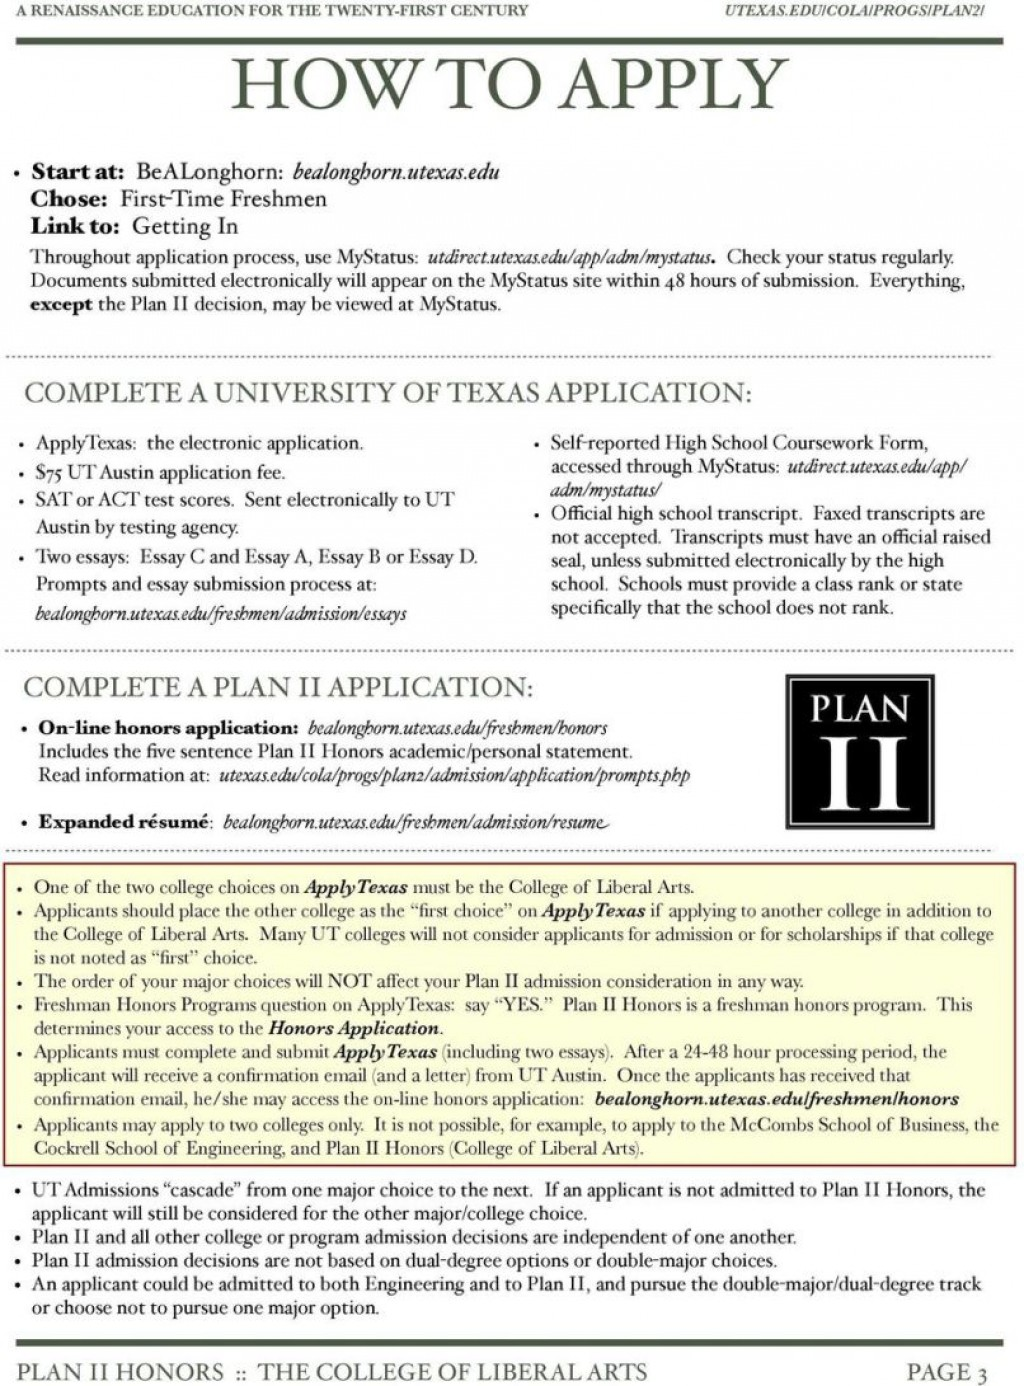 005 Applytexas Essay Prompts Poemdoc Or Apply Texas Topics P Fearsome Format Fall 2018 Length Large